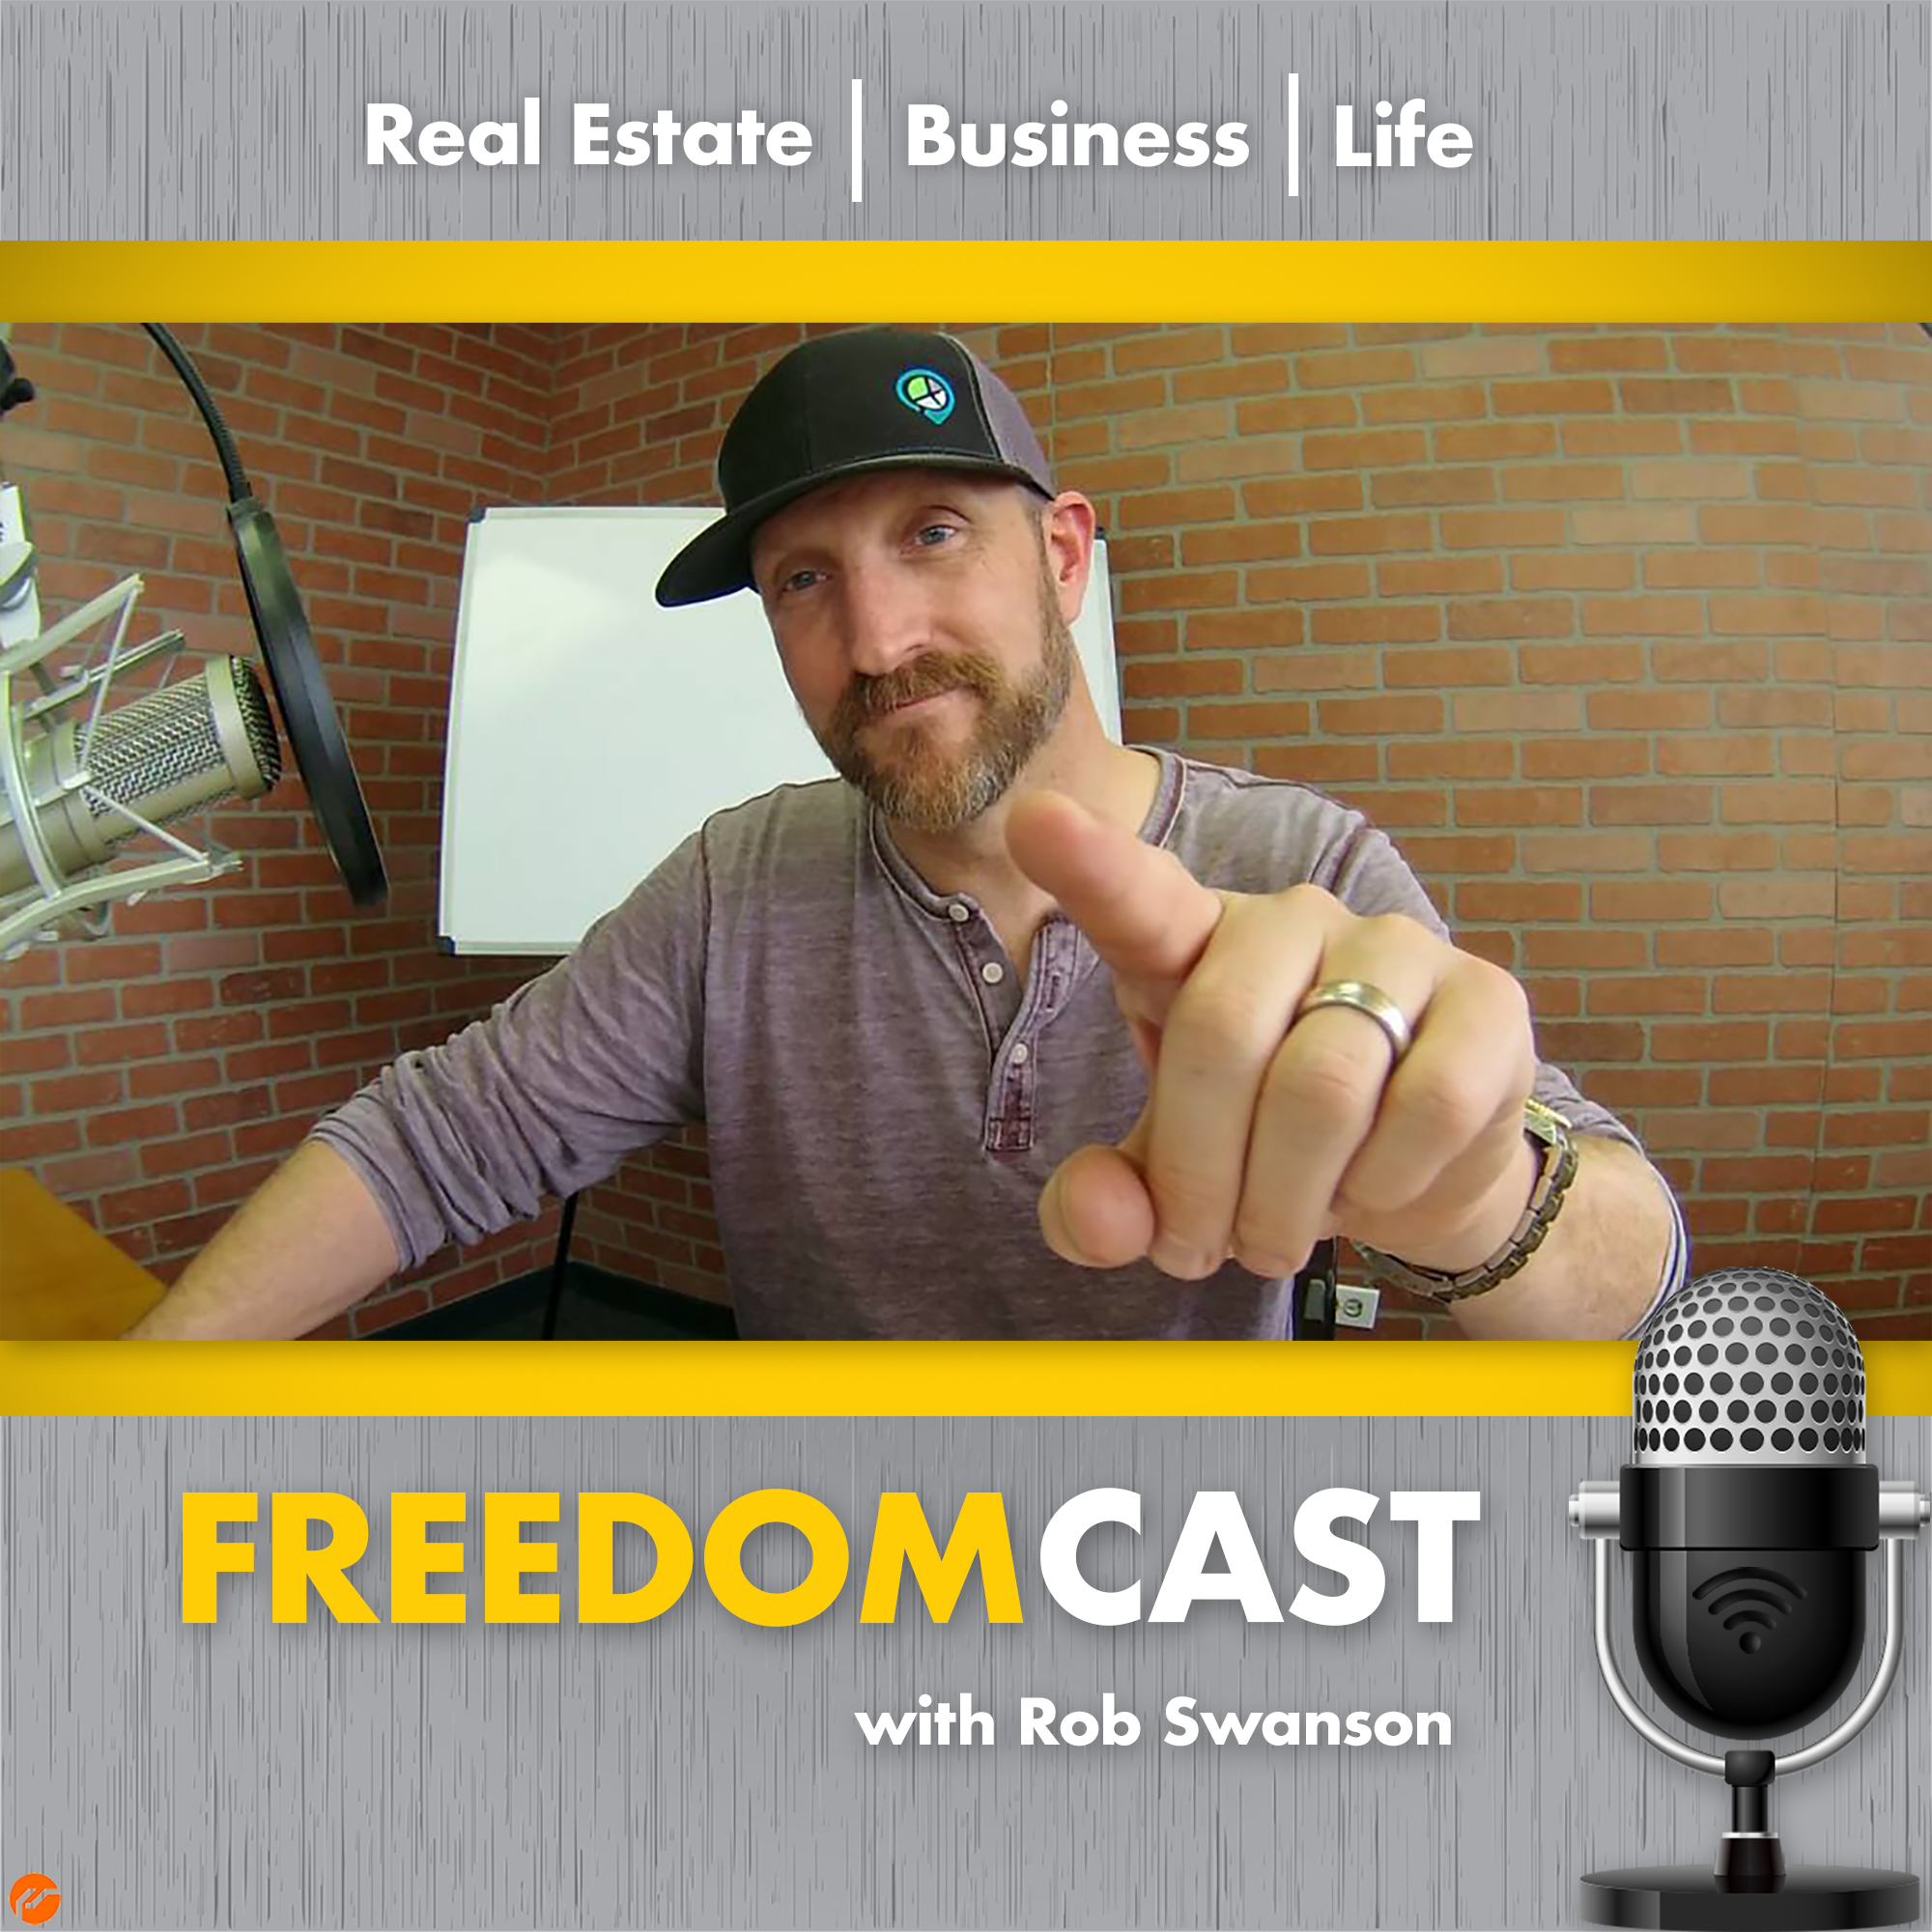 The FreedomCast with Rob Swanson